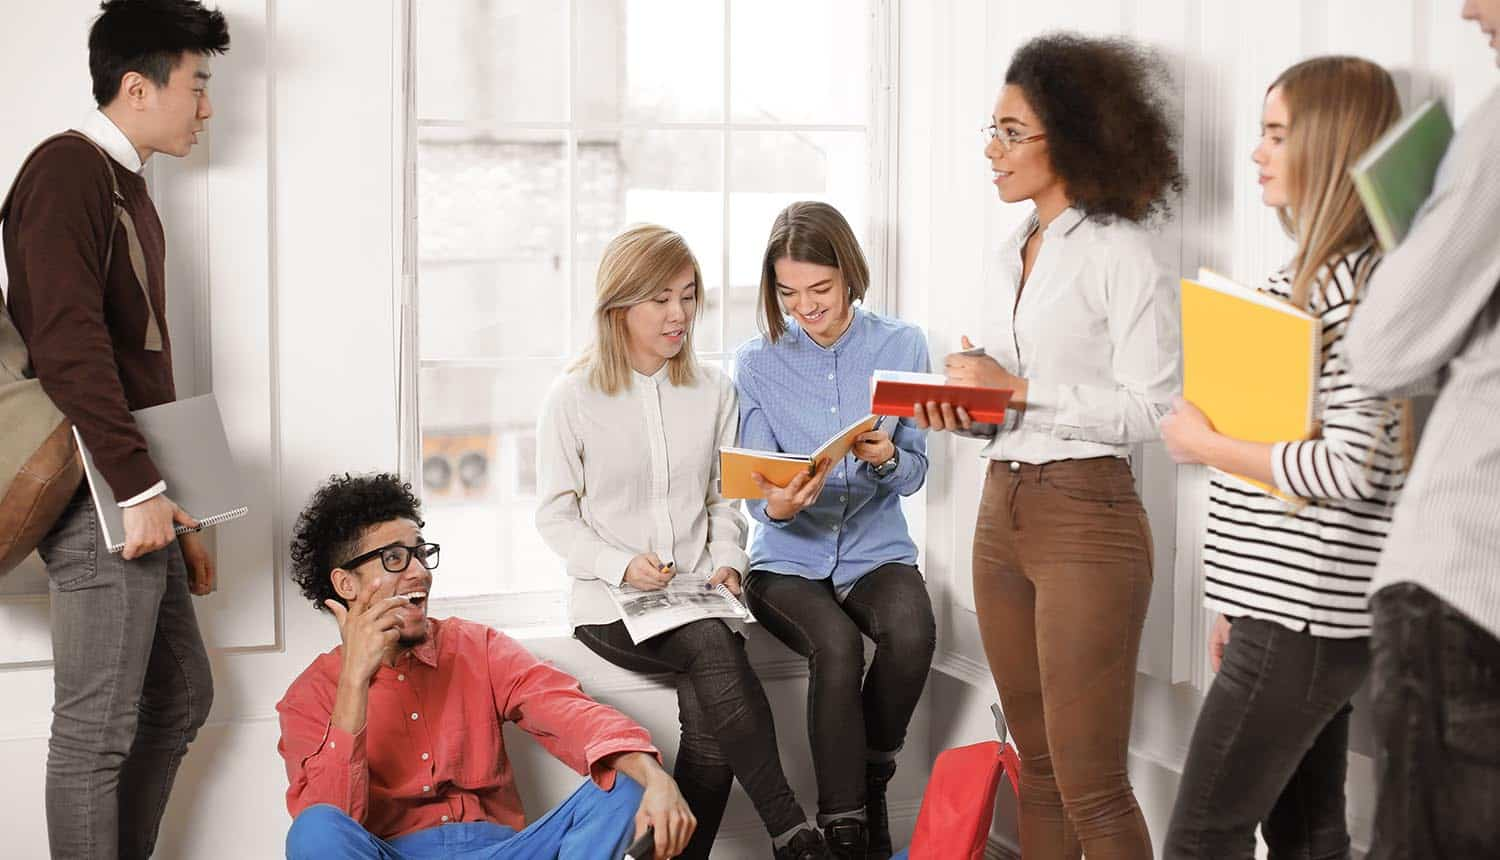 Group of employees discussing work